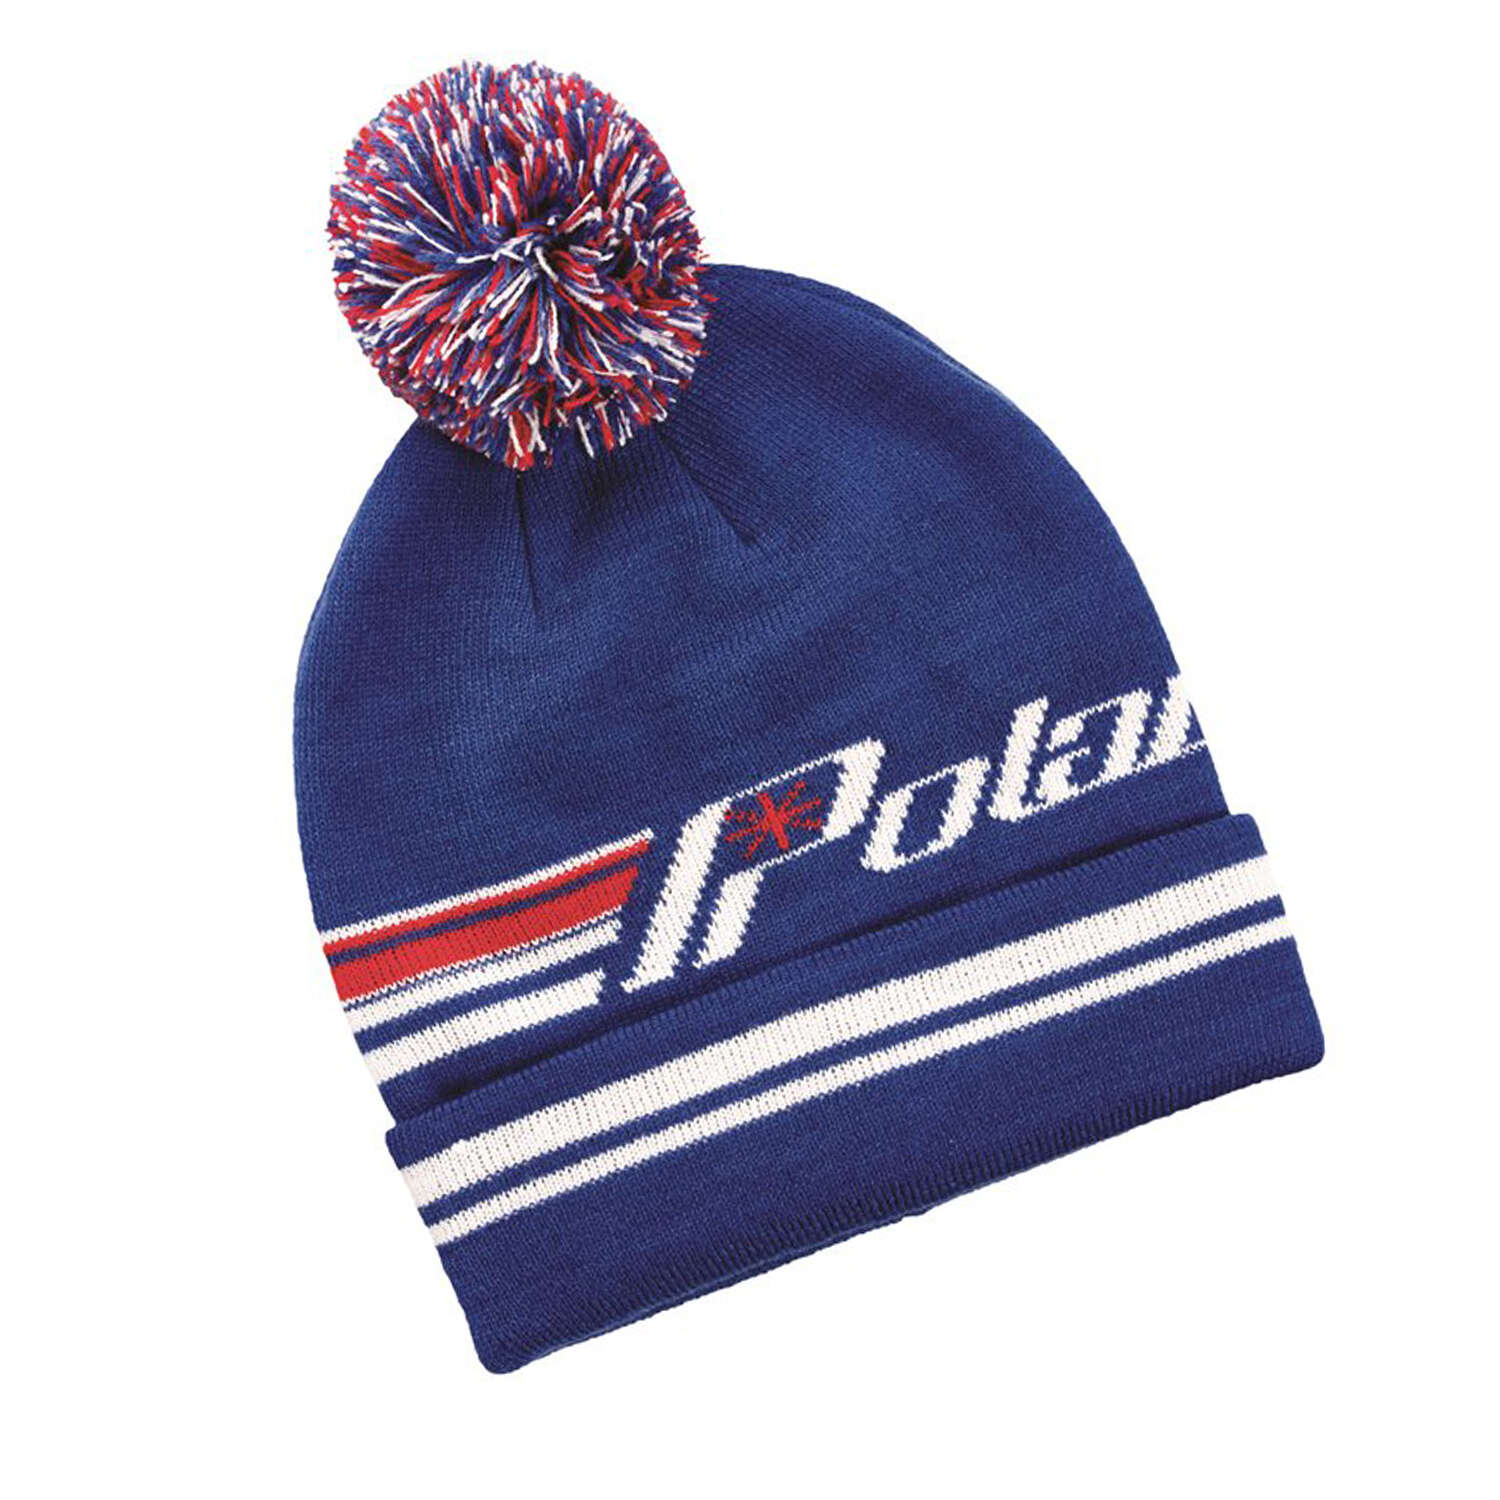 Unisex Knit Retro Cuff Beanie with Pom Pom, Blue